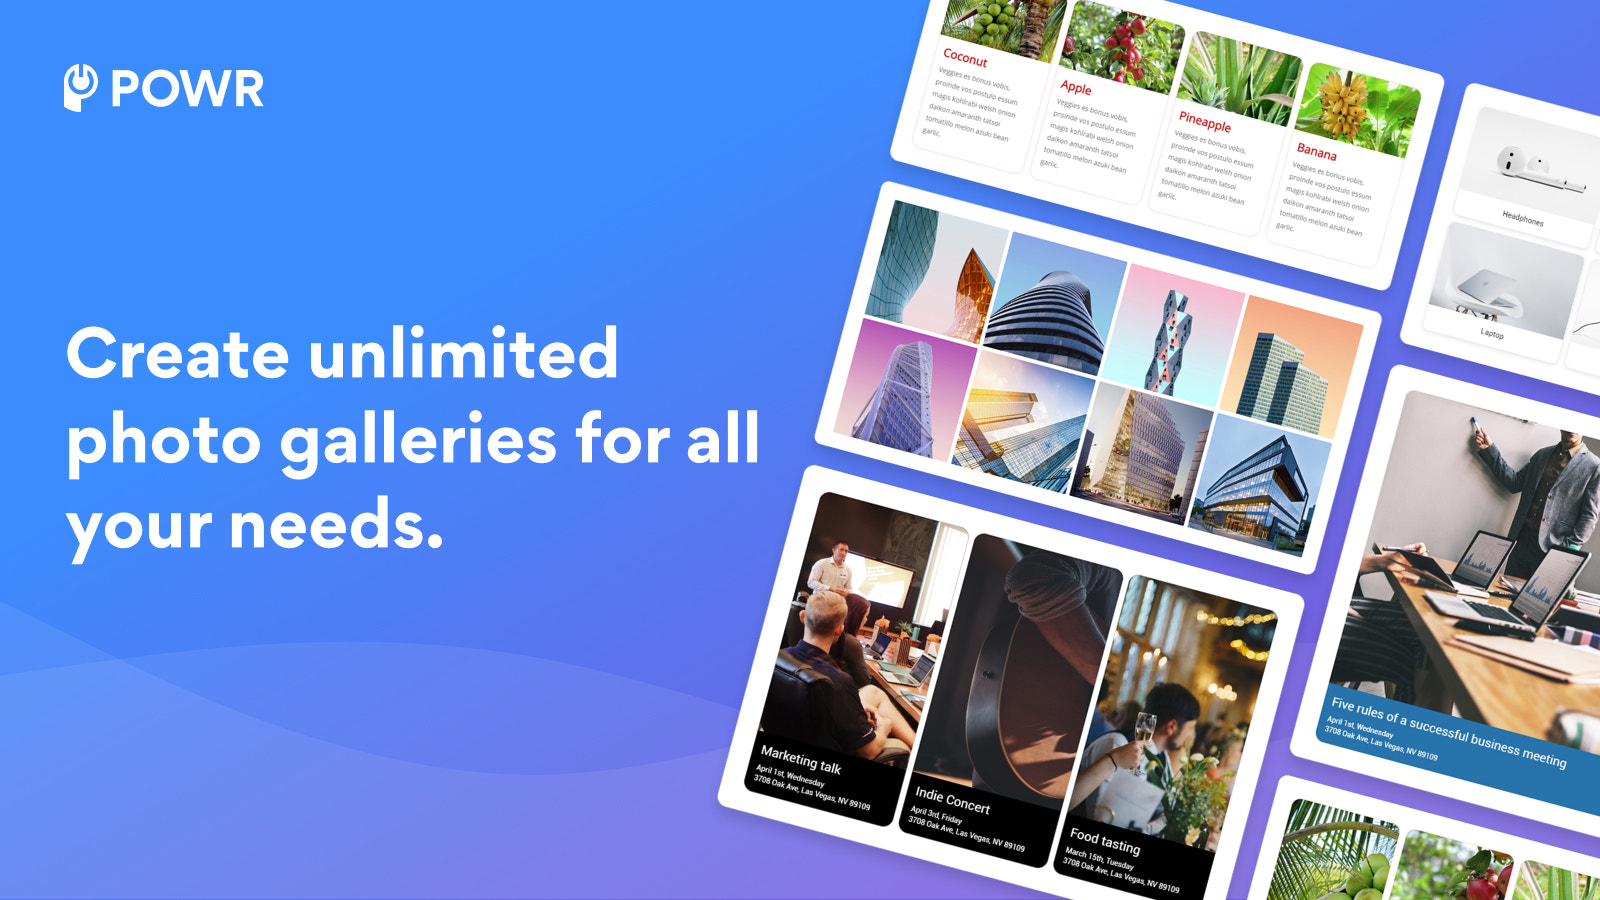 Create unlimited photo galleries for all your needs.